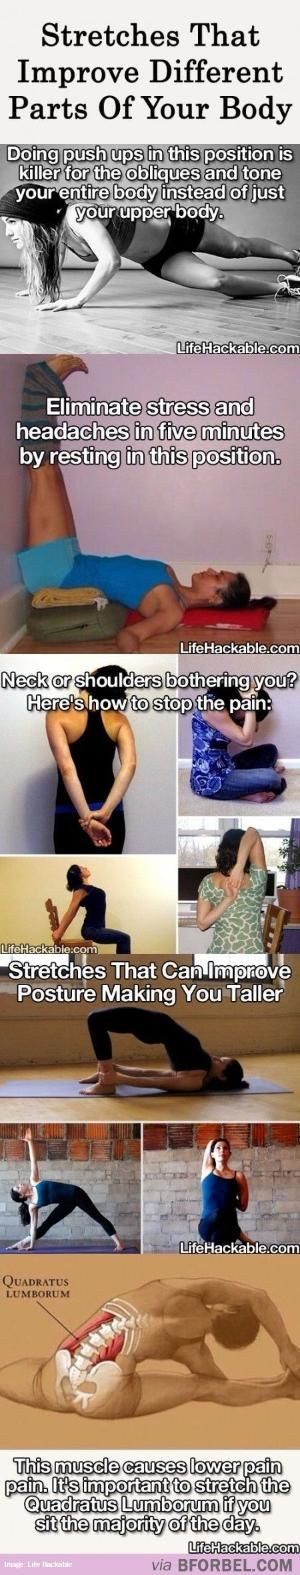 Types Of Stretches That Improve Different Parts Of Your Body… by janelle